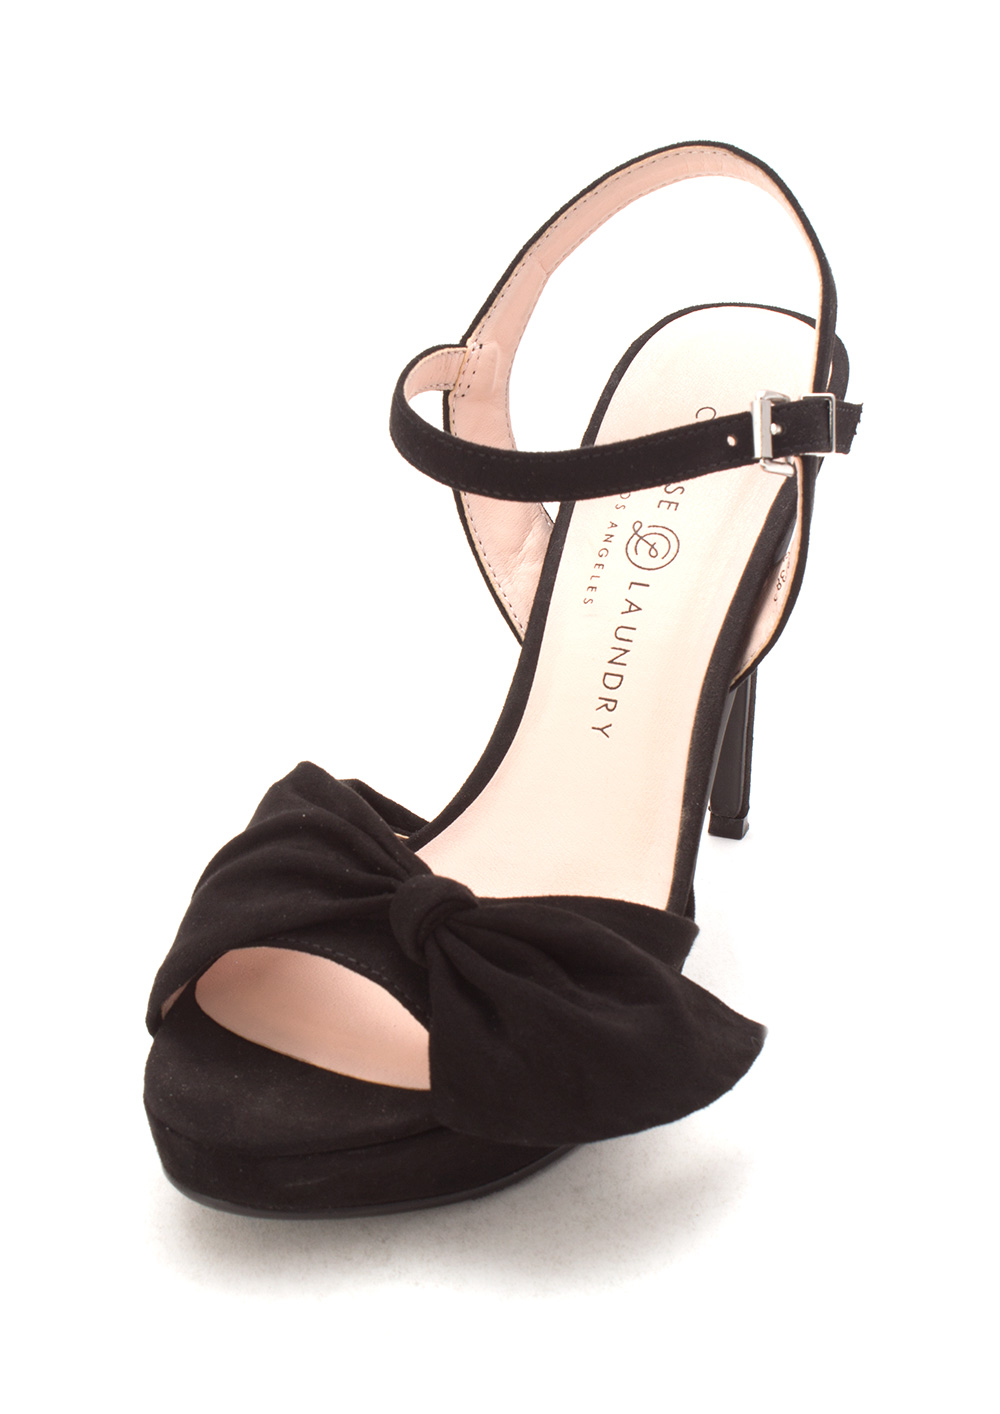 4d4aeb48f496 Chinese Laundry Womens honeysuckle Open Toe Ankle Strap Classic ...